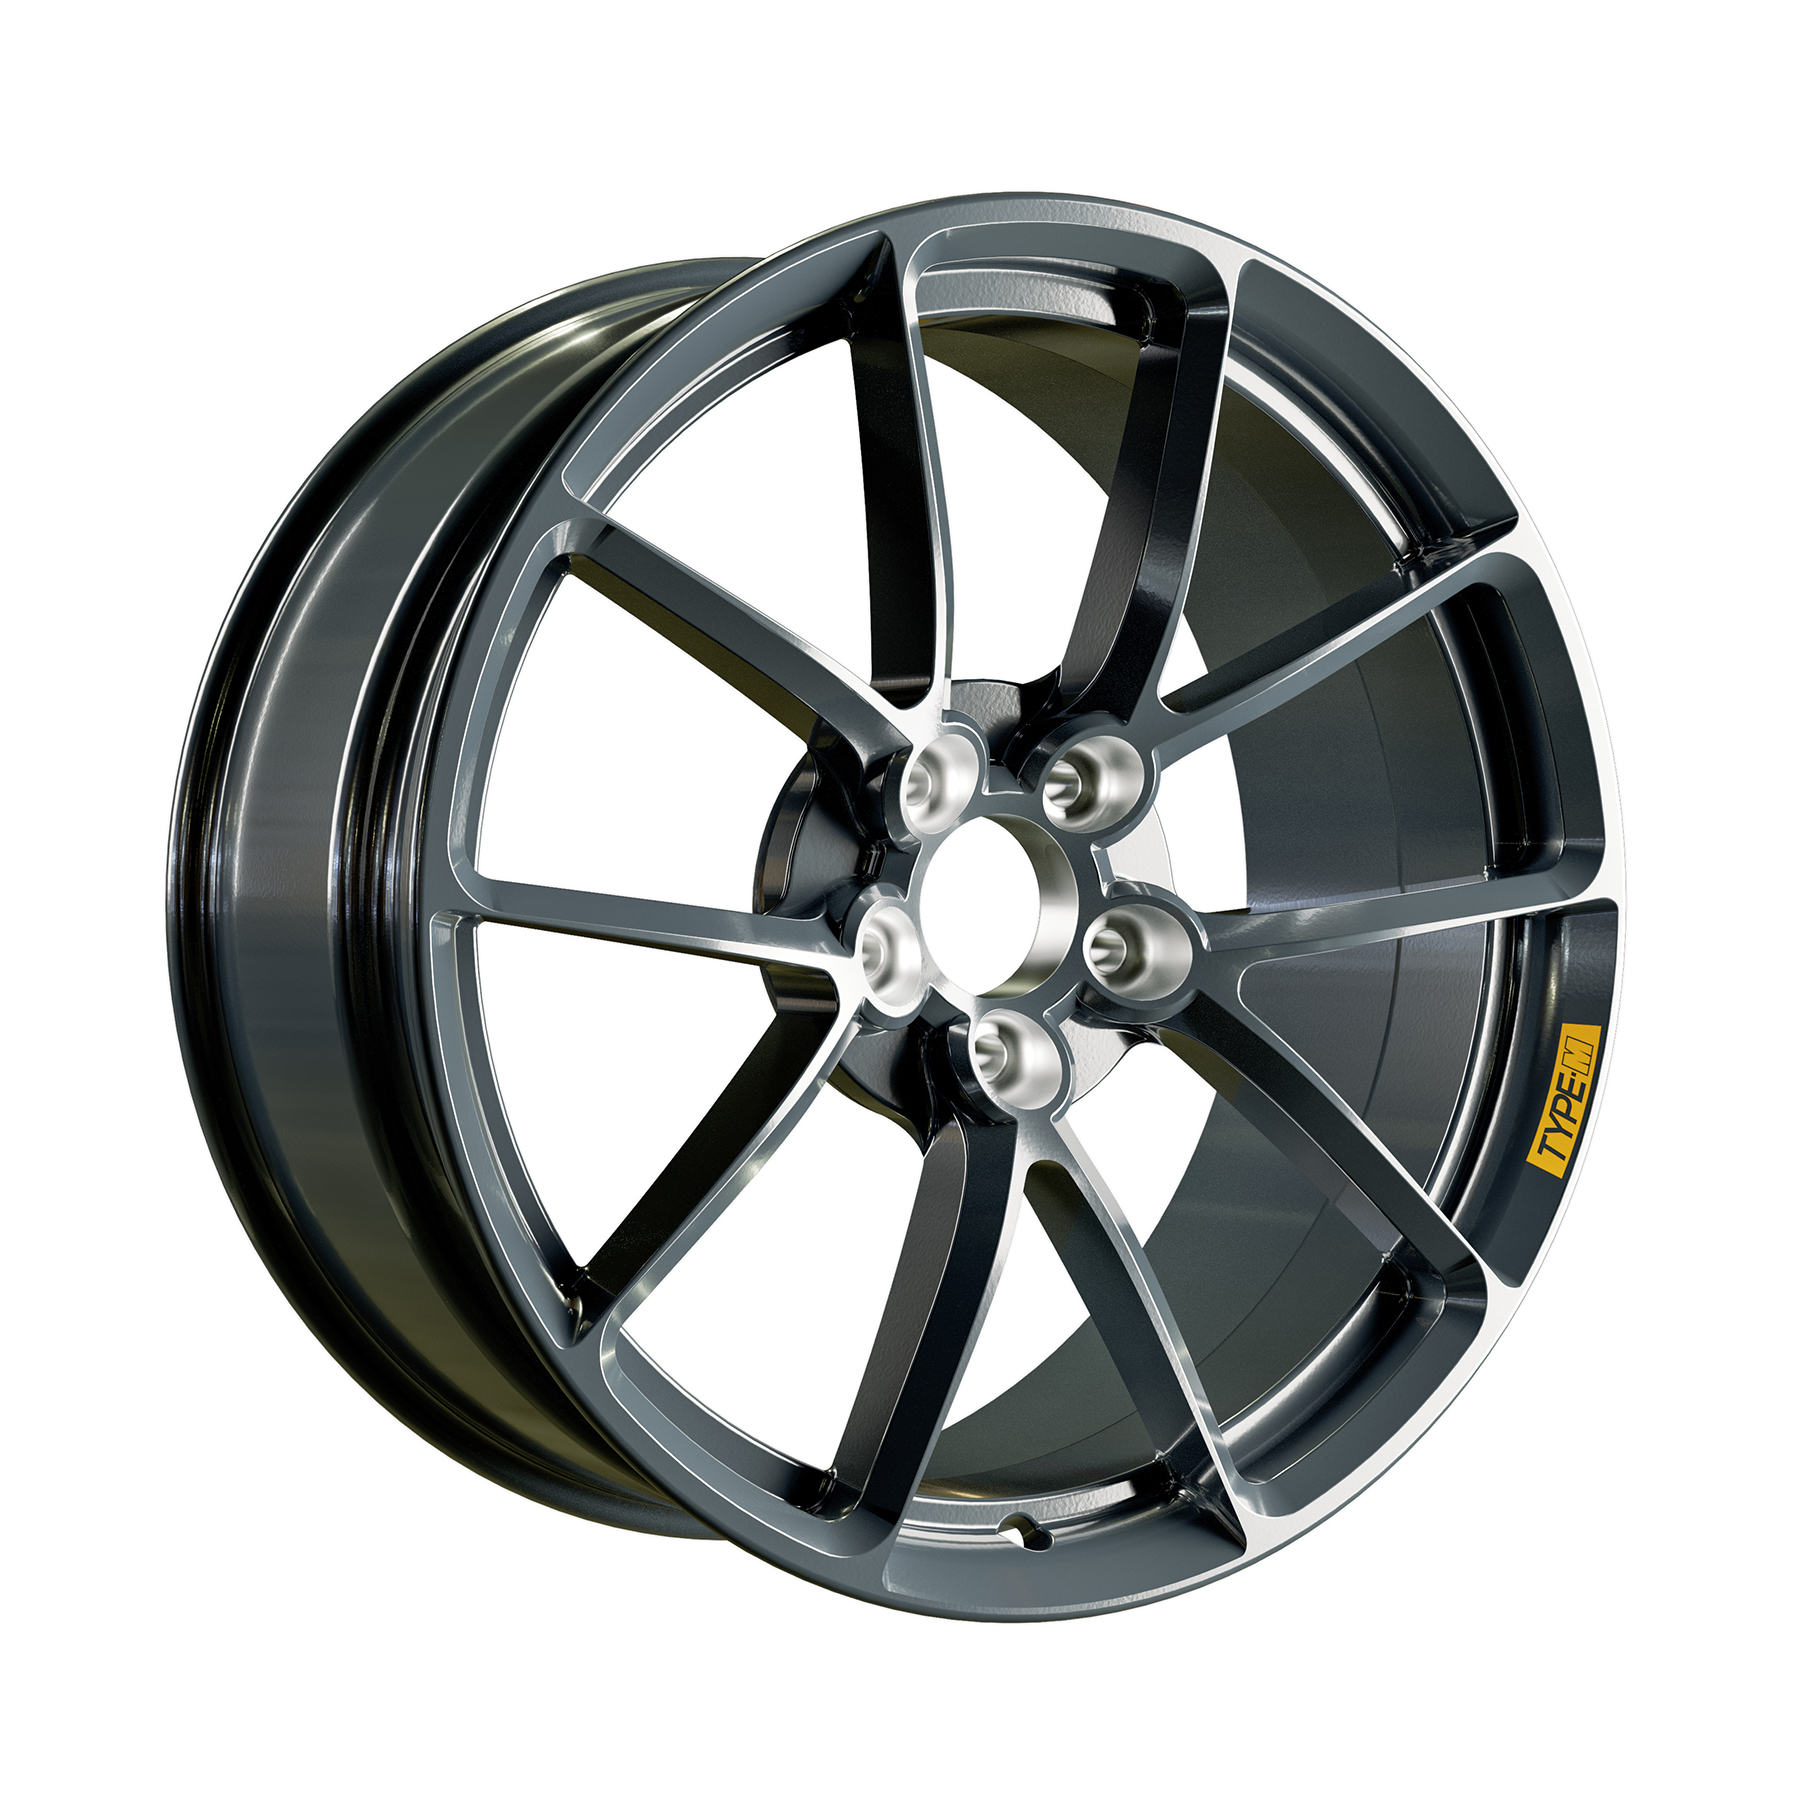 Product rendering - aftermarket performance alloy wheel